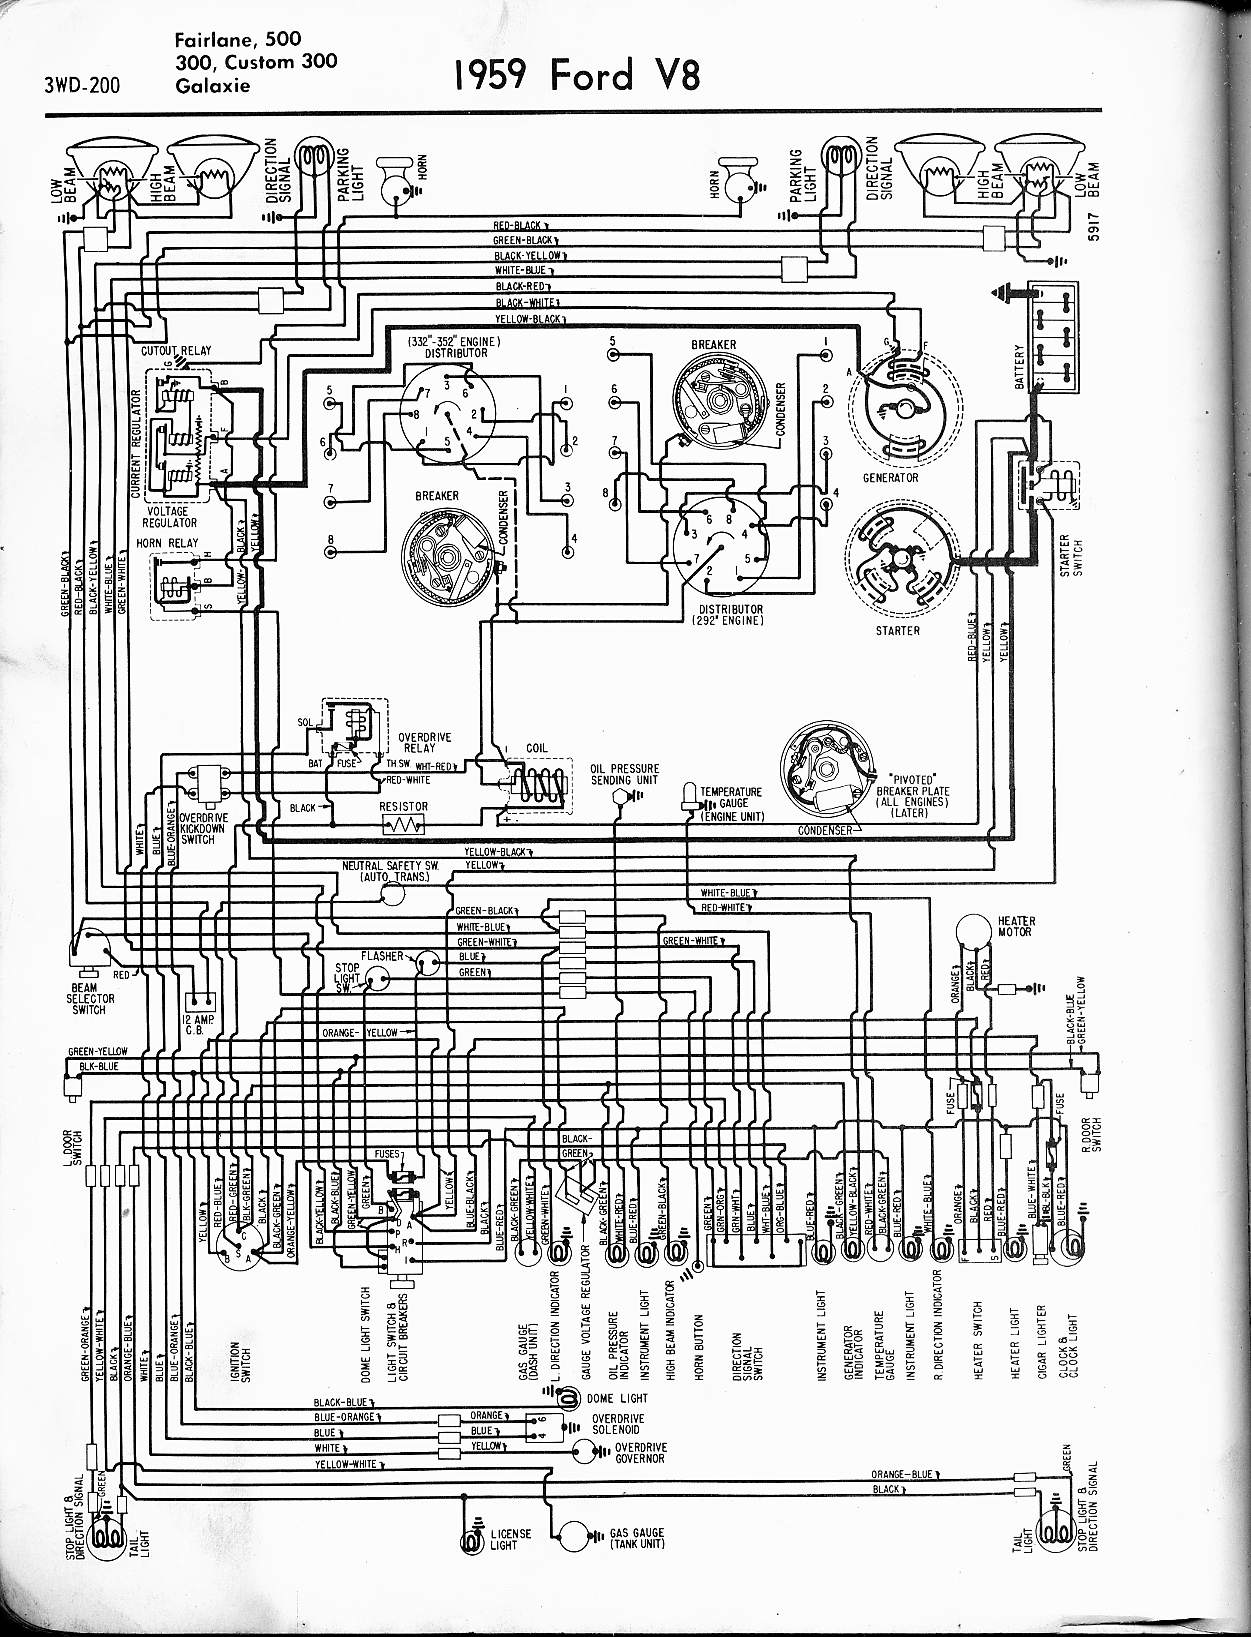 1959 ford ranch wagon ignition wiring diagram house wiring diagram rh mollusksurfshopnyc com